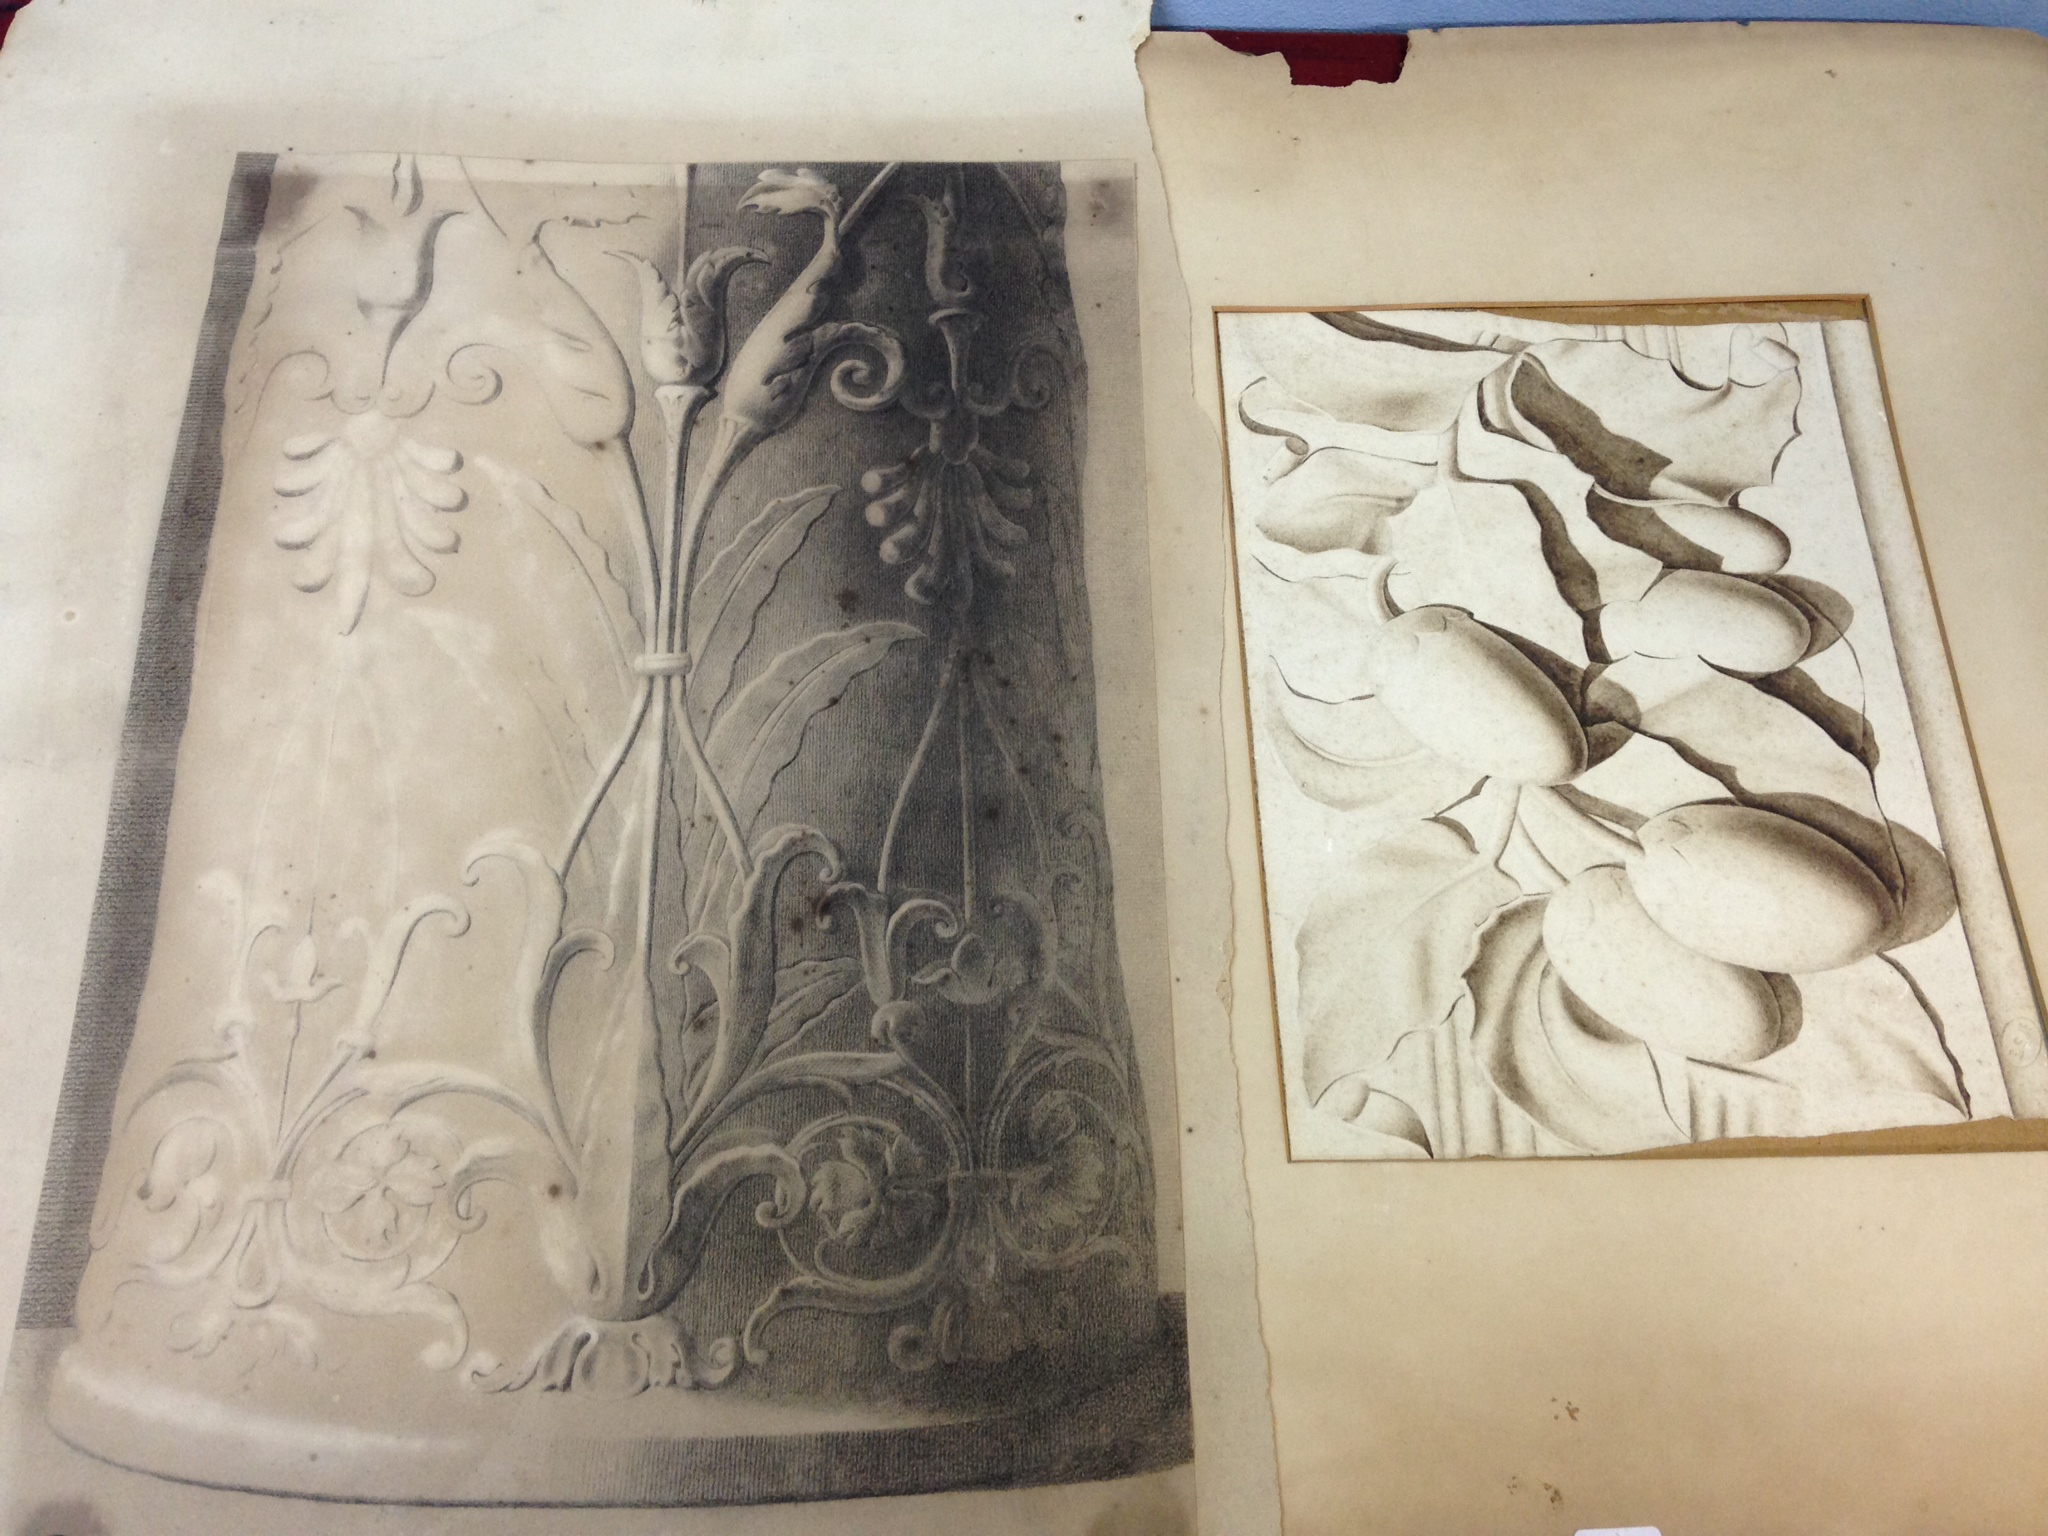 Lot 436 - Two pencil drawings Edward S Kennedy fl. 1863-90 44.5 x 30 and 21 x 28